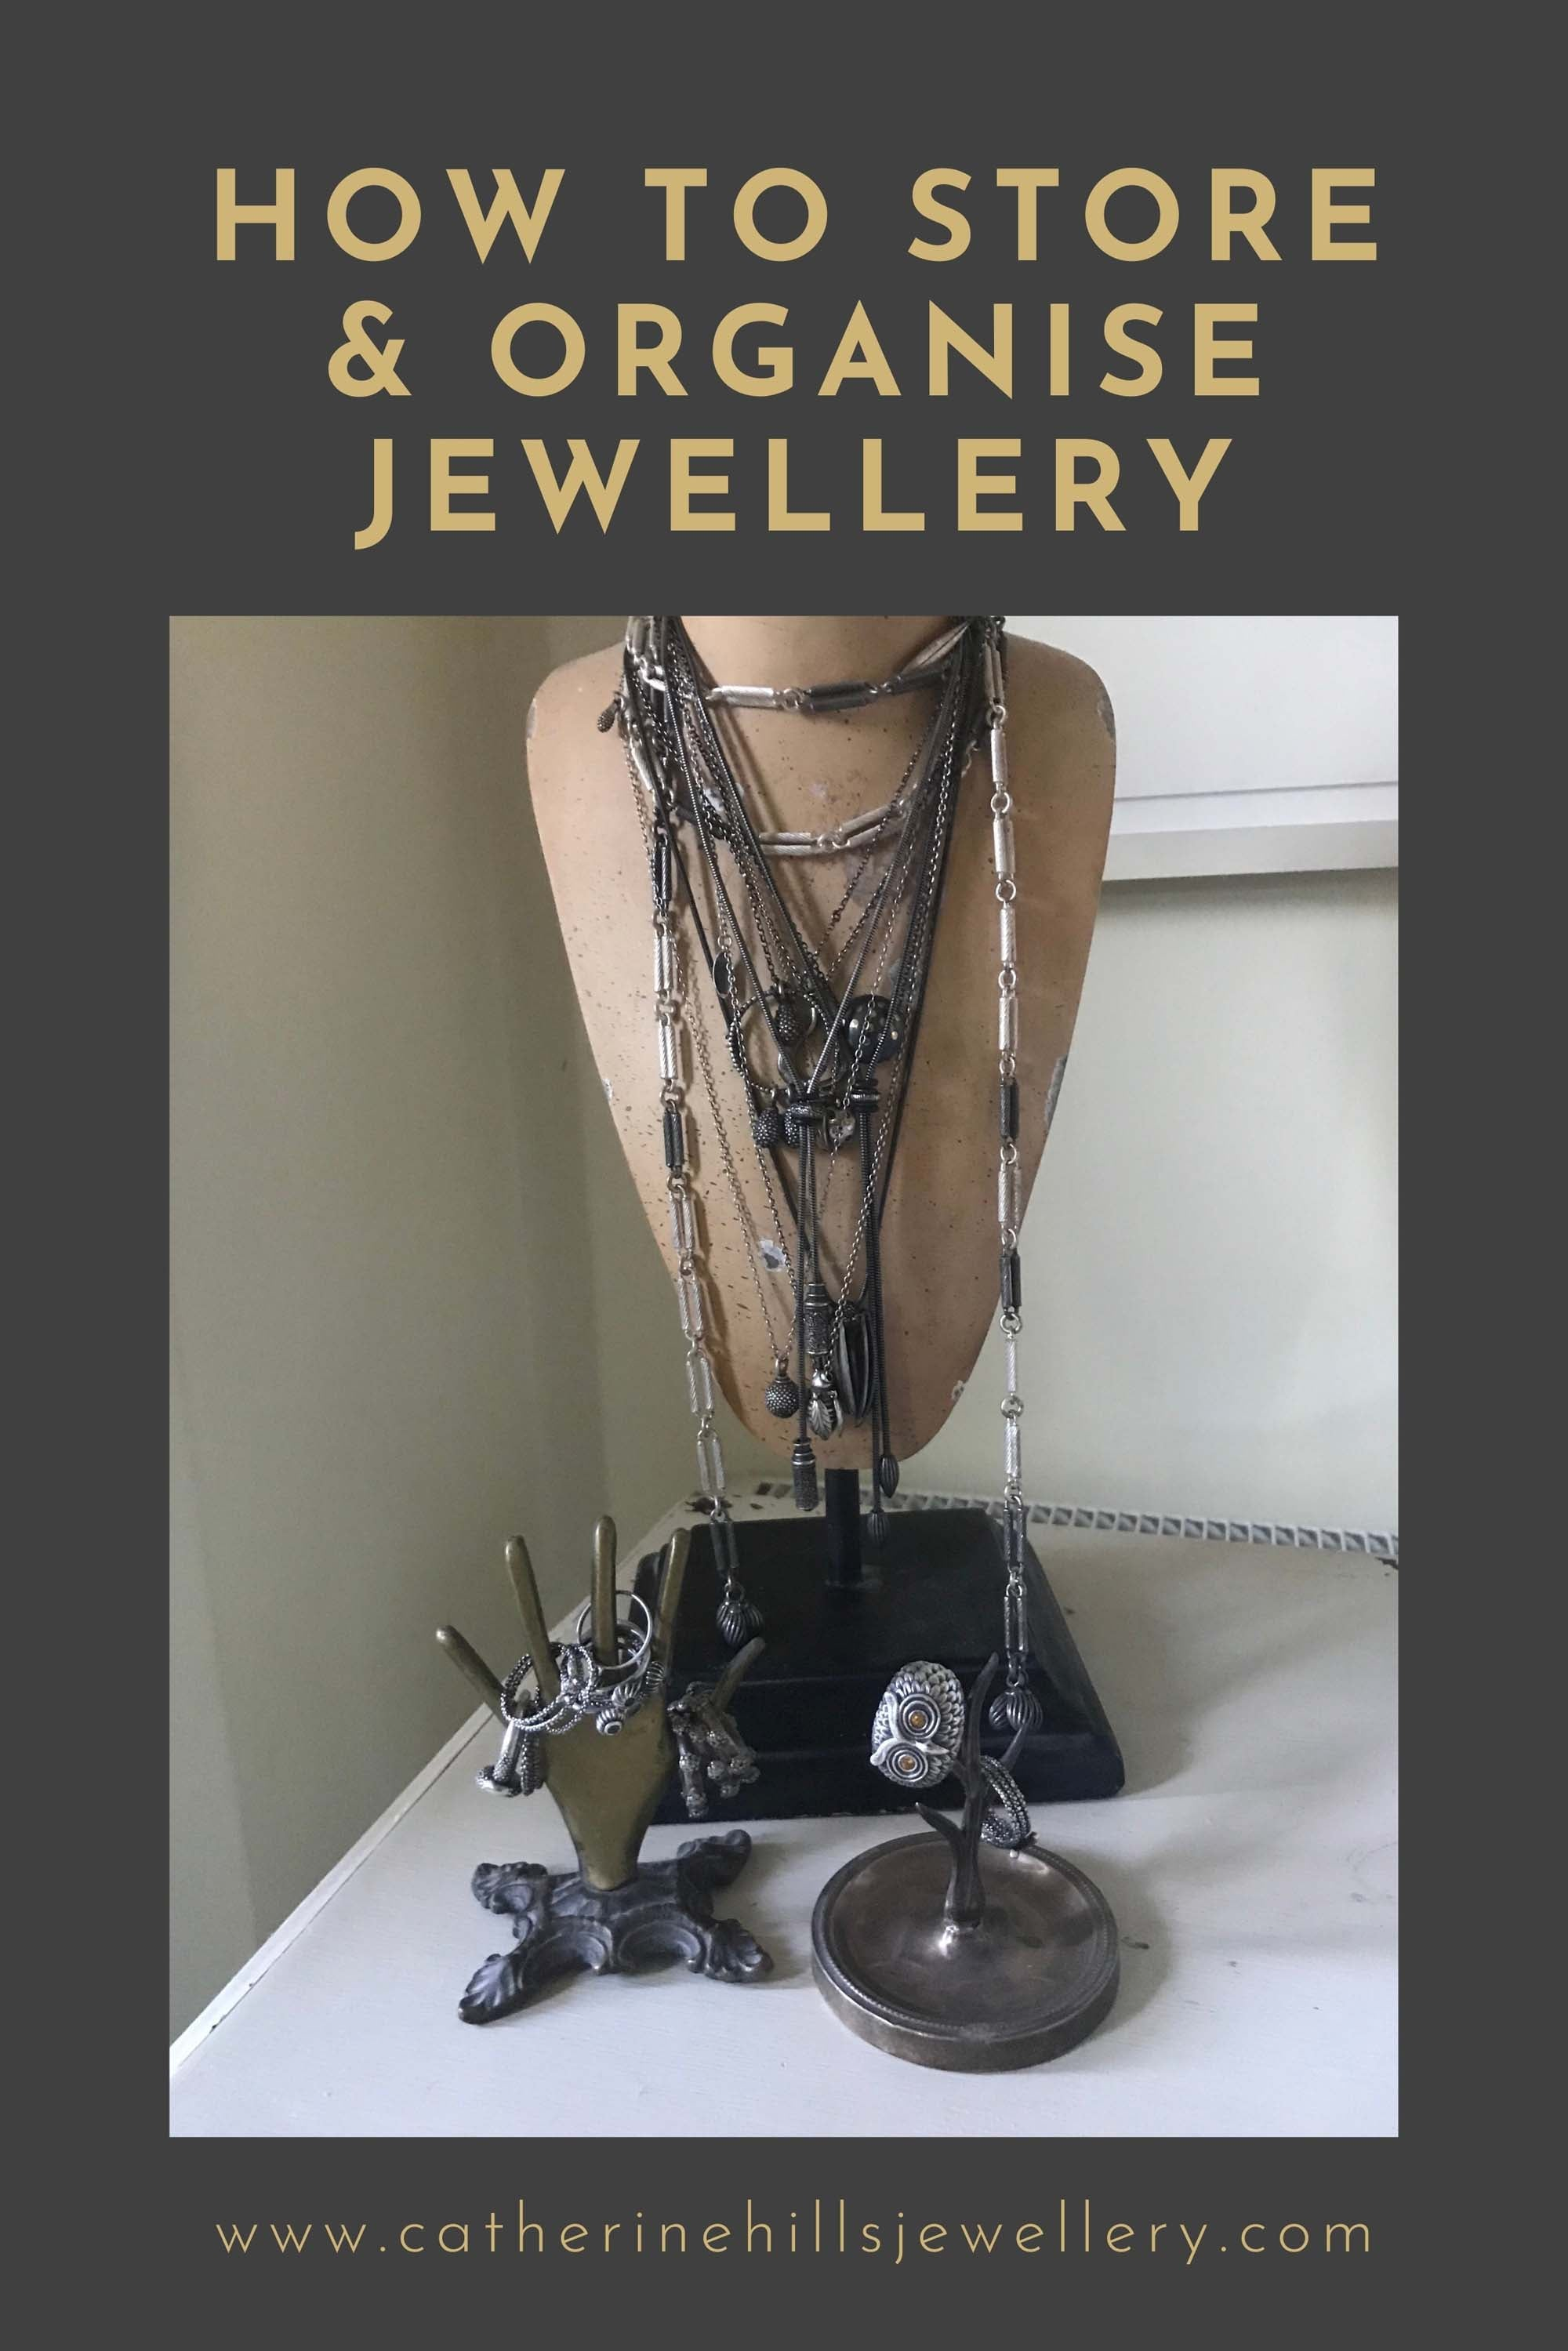 How to store and organise jewellery by Catherine Hills